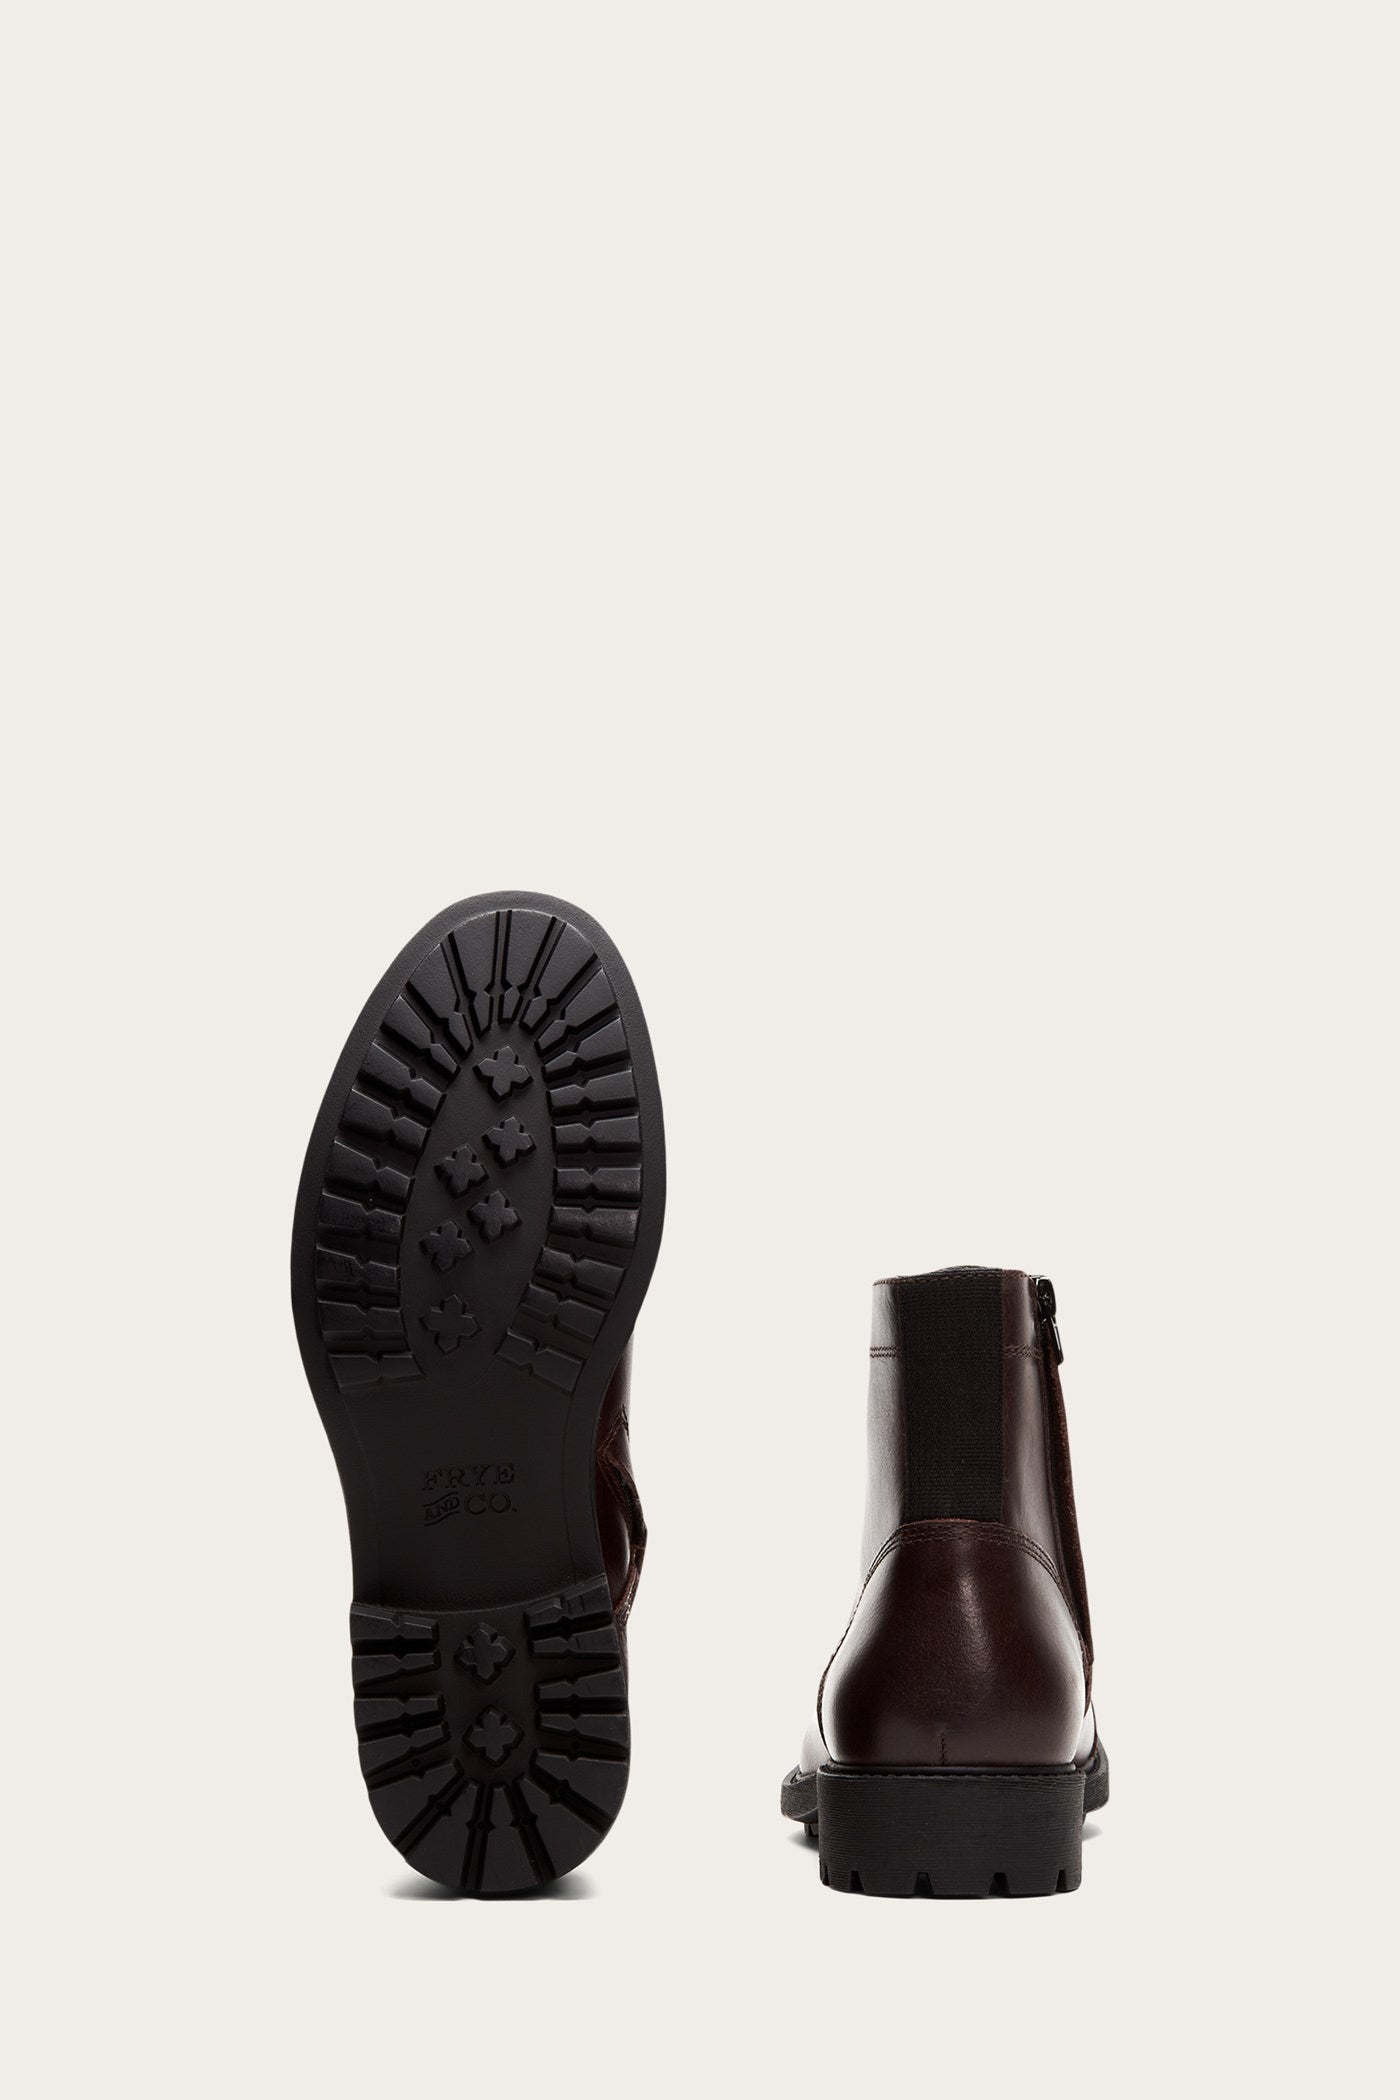 Details about  /Frye and Co Choose SZ//color Men/'s Cody Lace Up Fashion Boot